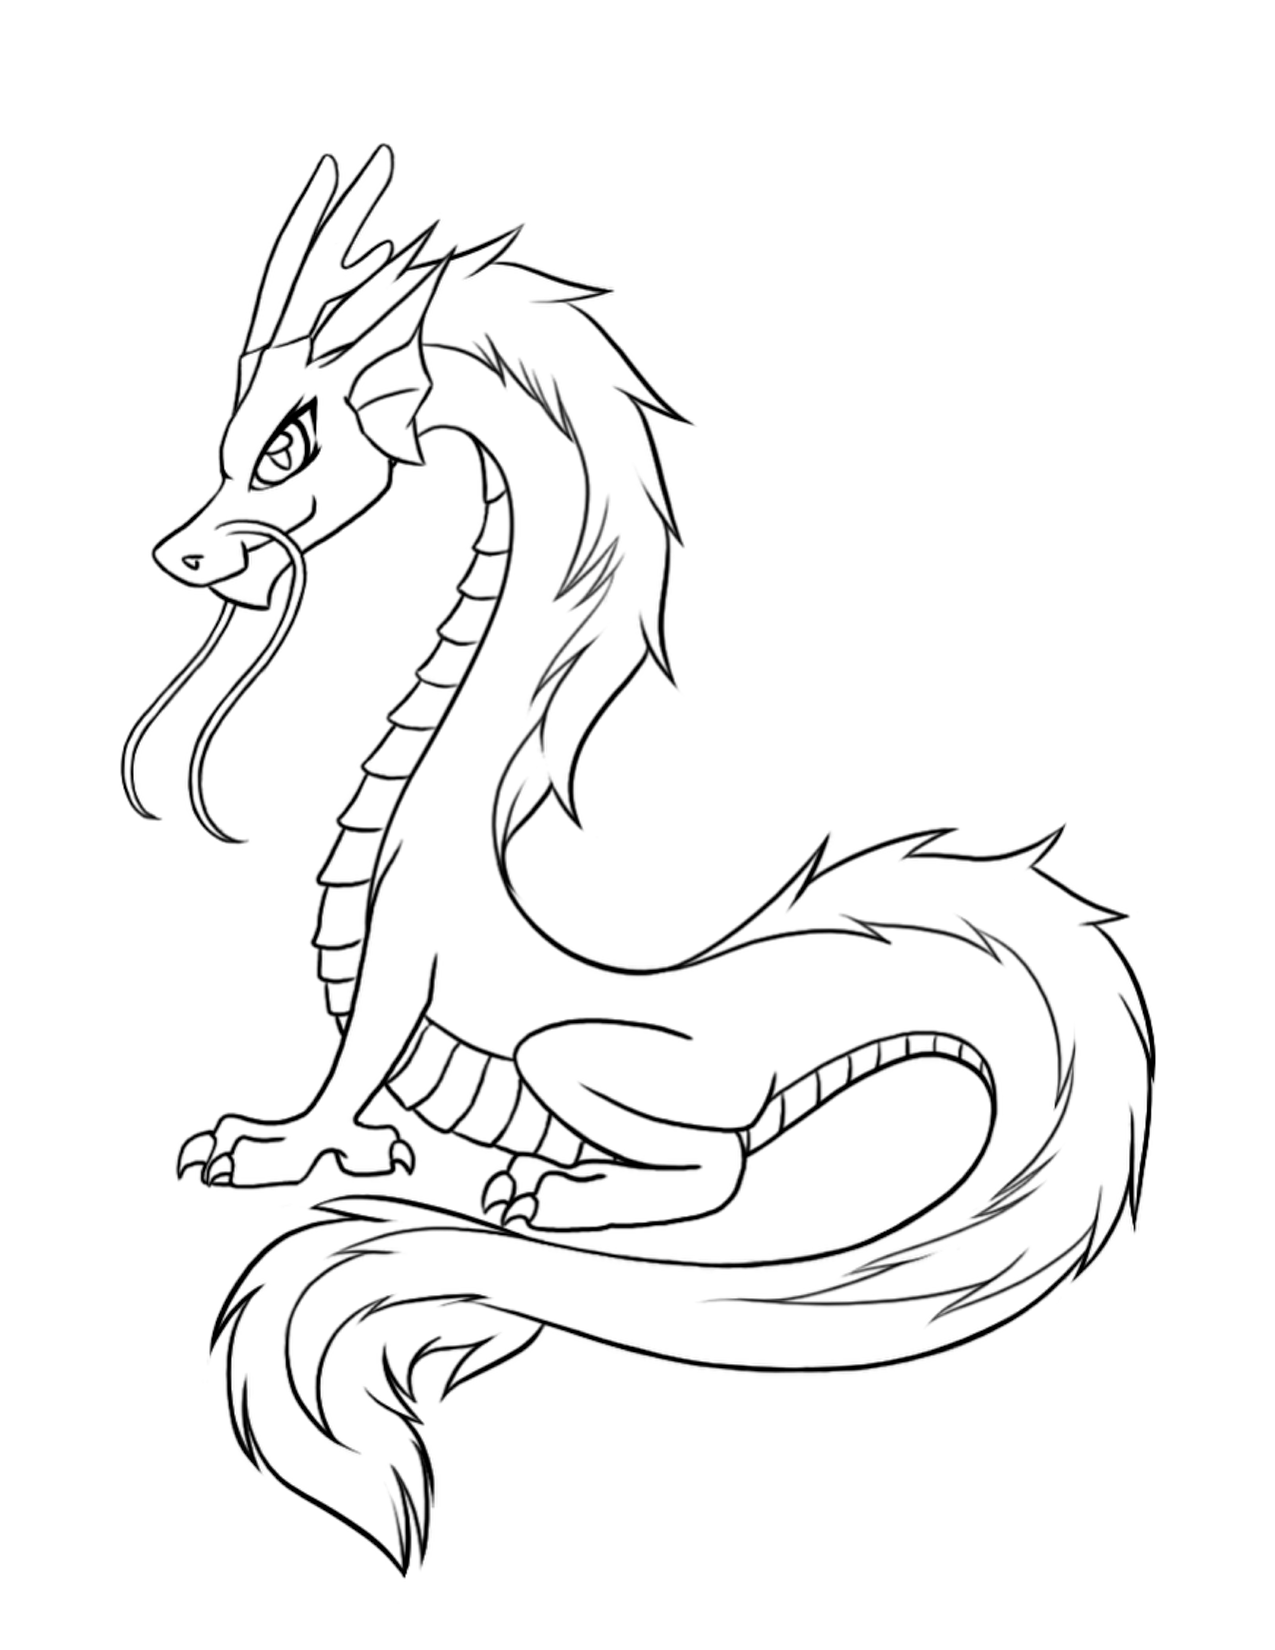 Free Printable Dragon Coloring Pages For Kids | Pinterest ...